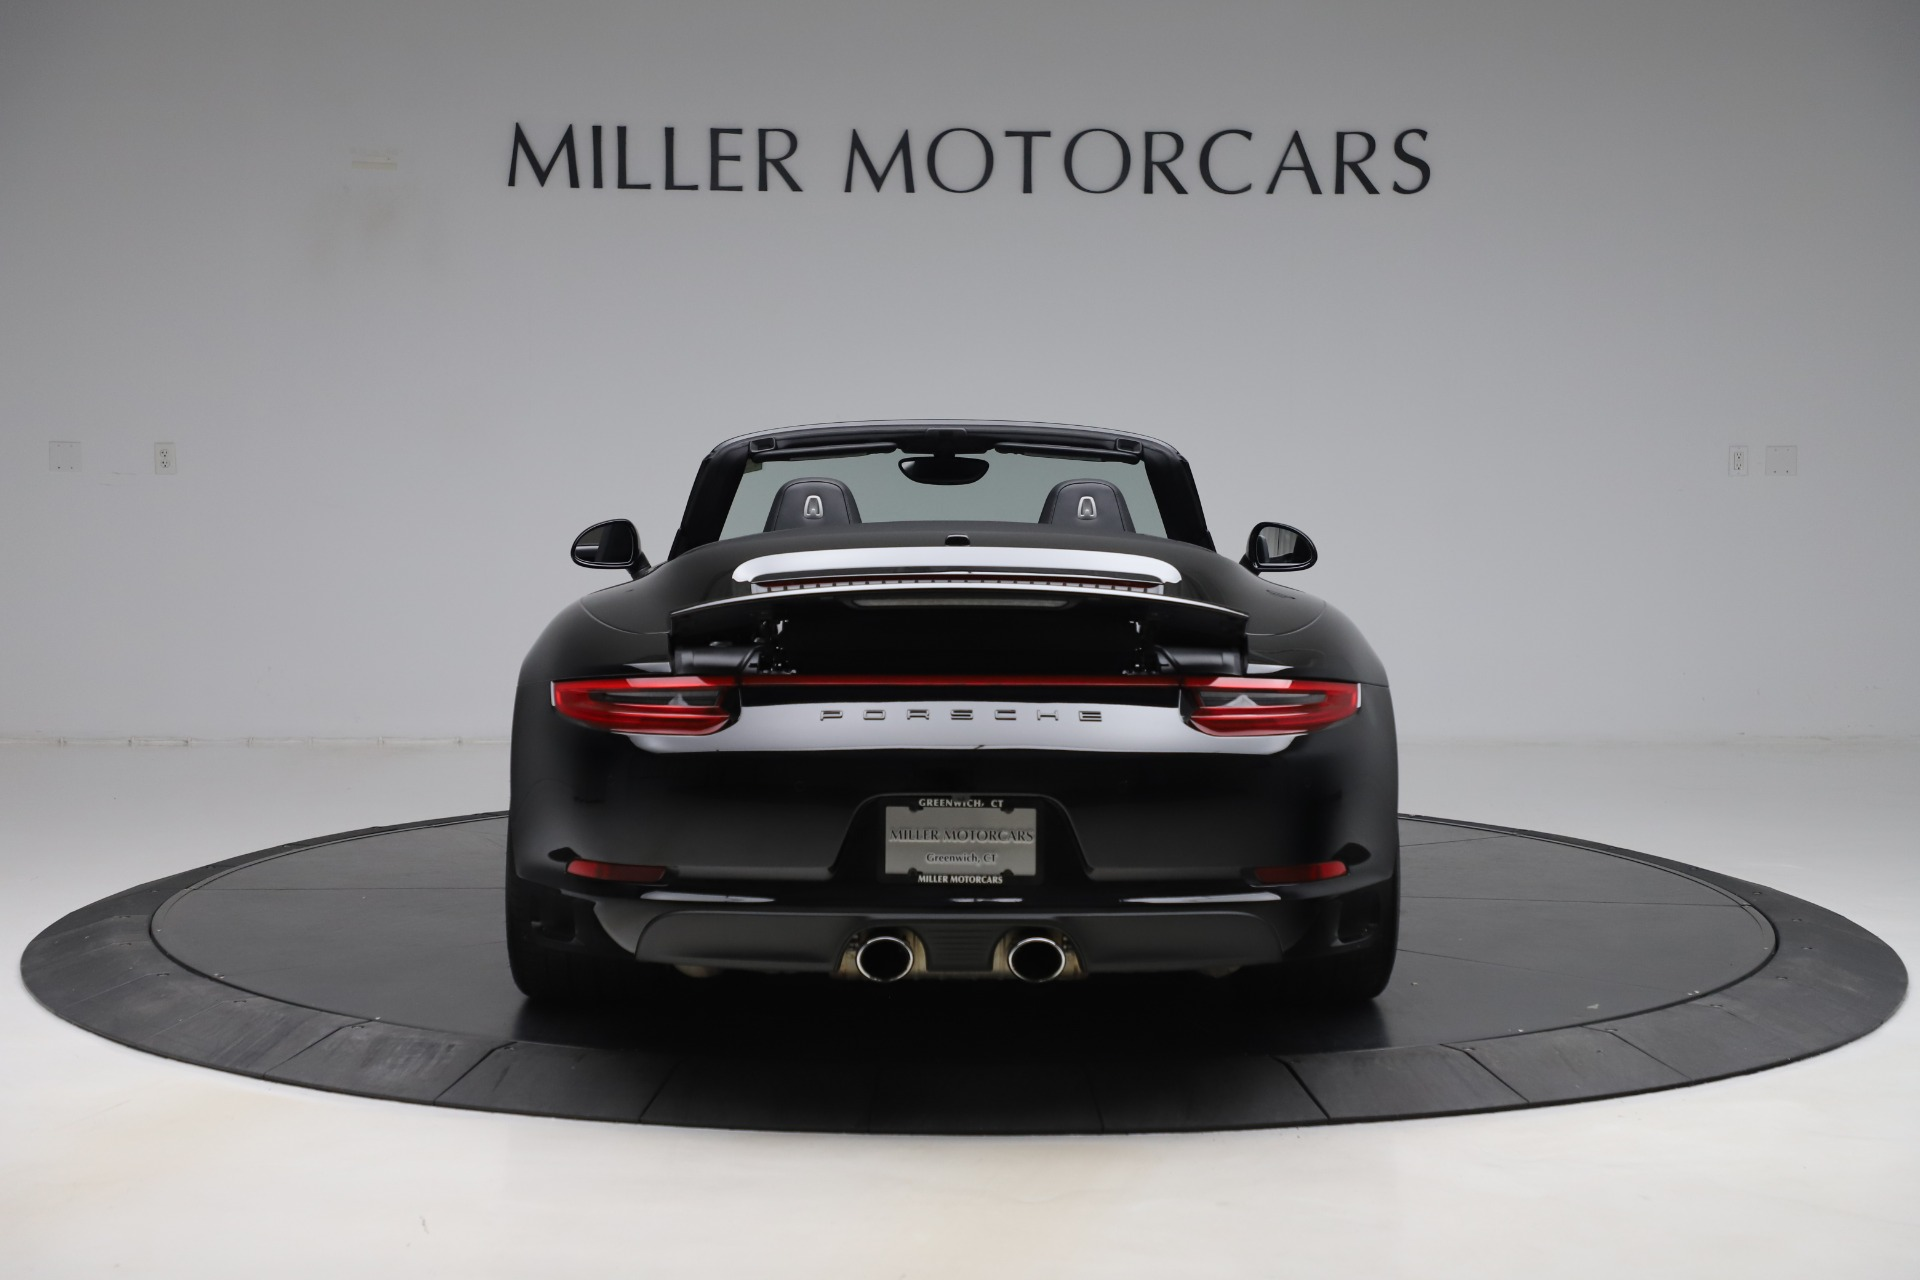 Used 2017 Porsche 911 Carrera 4S For Sale In Greenwich, CT 3562_p6